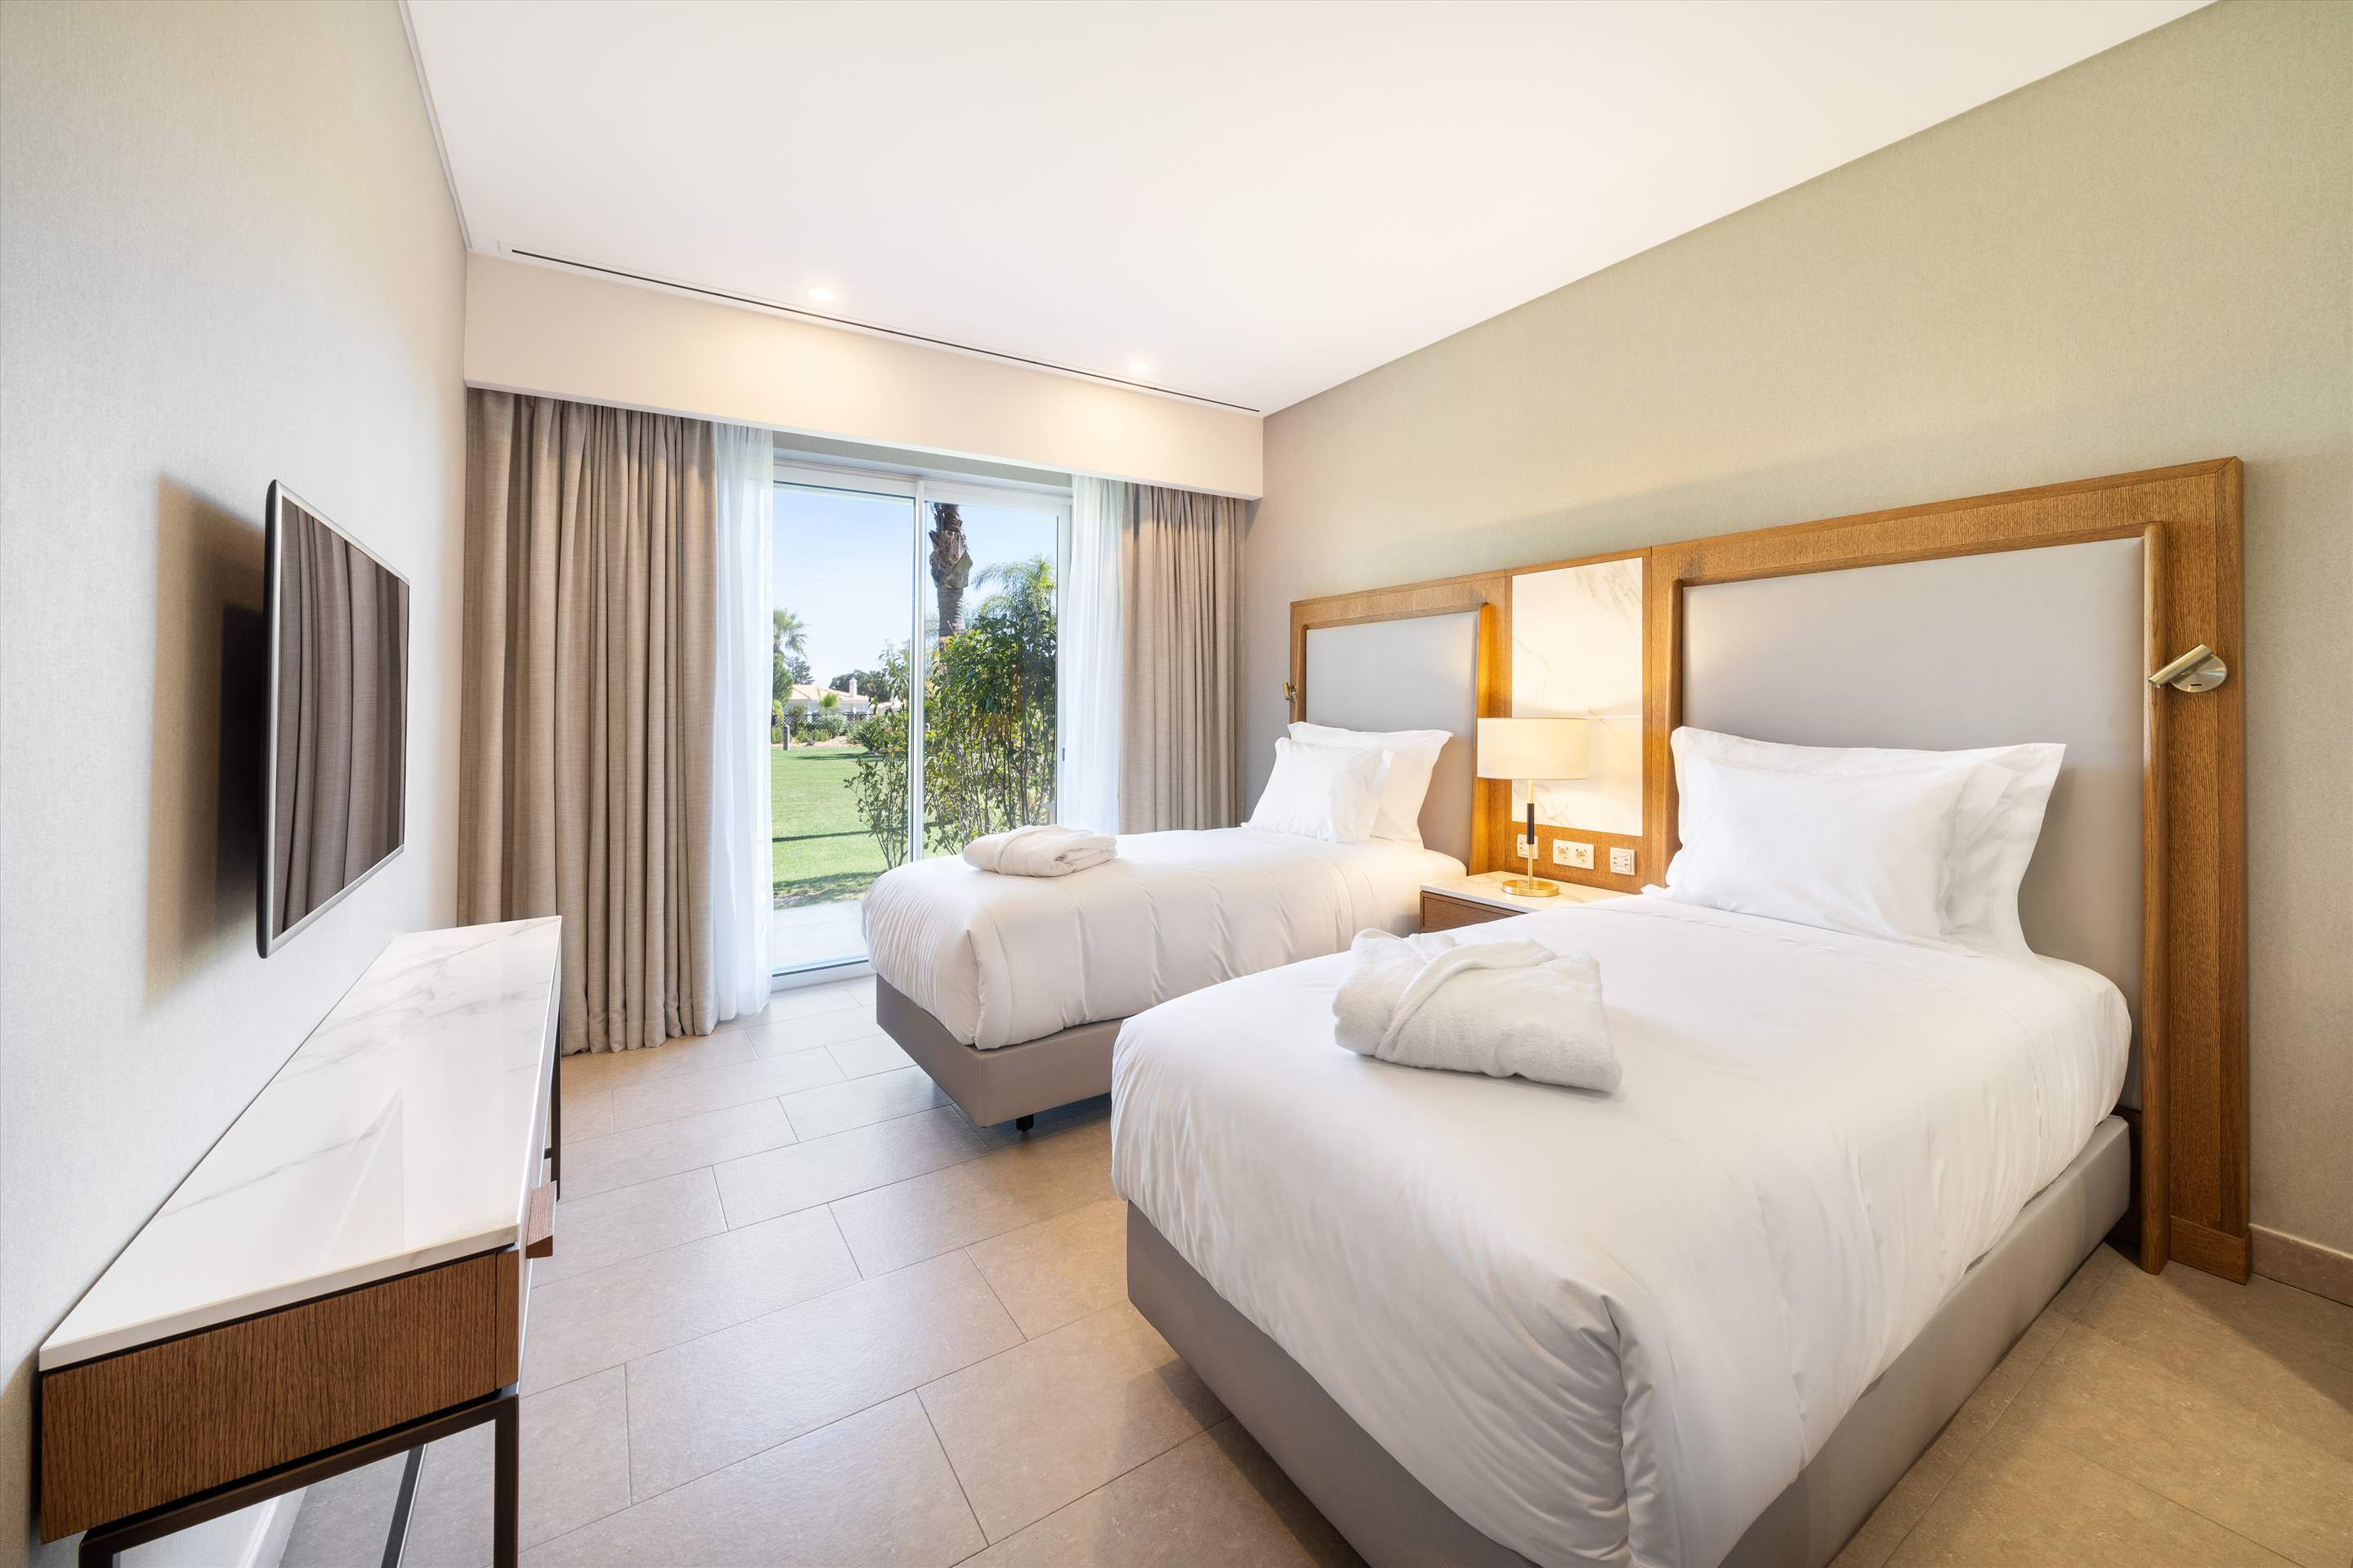 Wyndham Grand Algarve 2 Bedroom, Deluxe Family Suite, Pool Side, Room Only, 2 bedroom apartment in Wyndham Grand Algarve, Algarve Photo #9